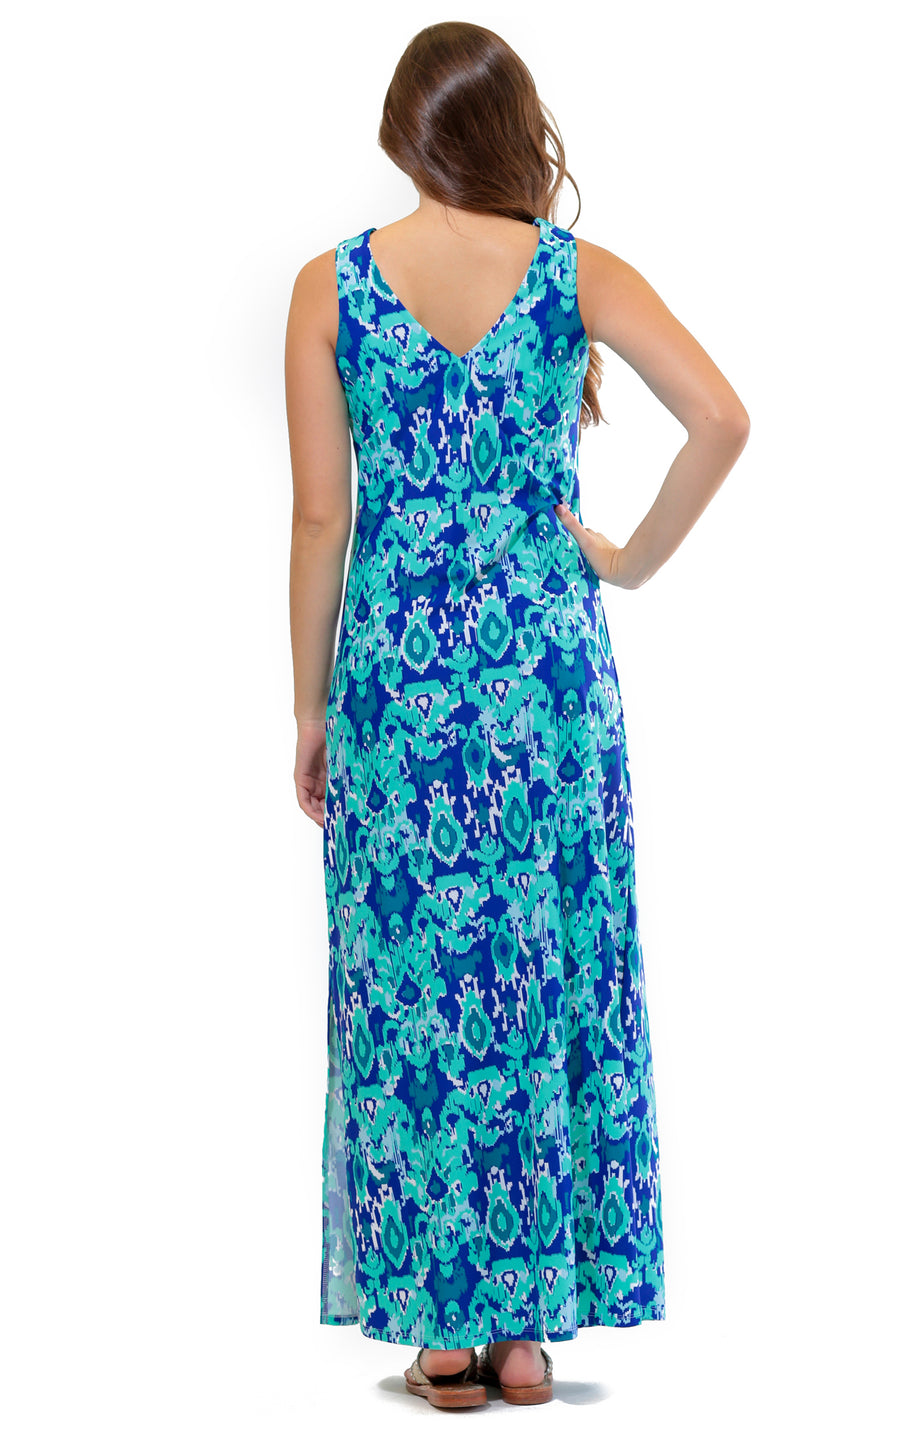 All For Color-Bahama Blue Seaside Ridge Maxi Dress - FINAL SALE-Dresses